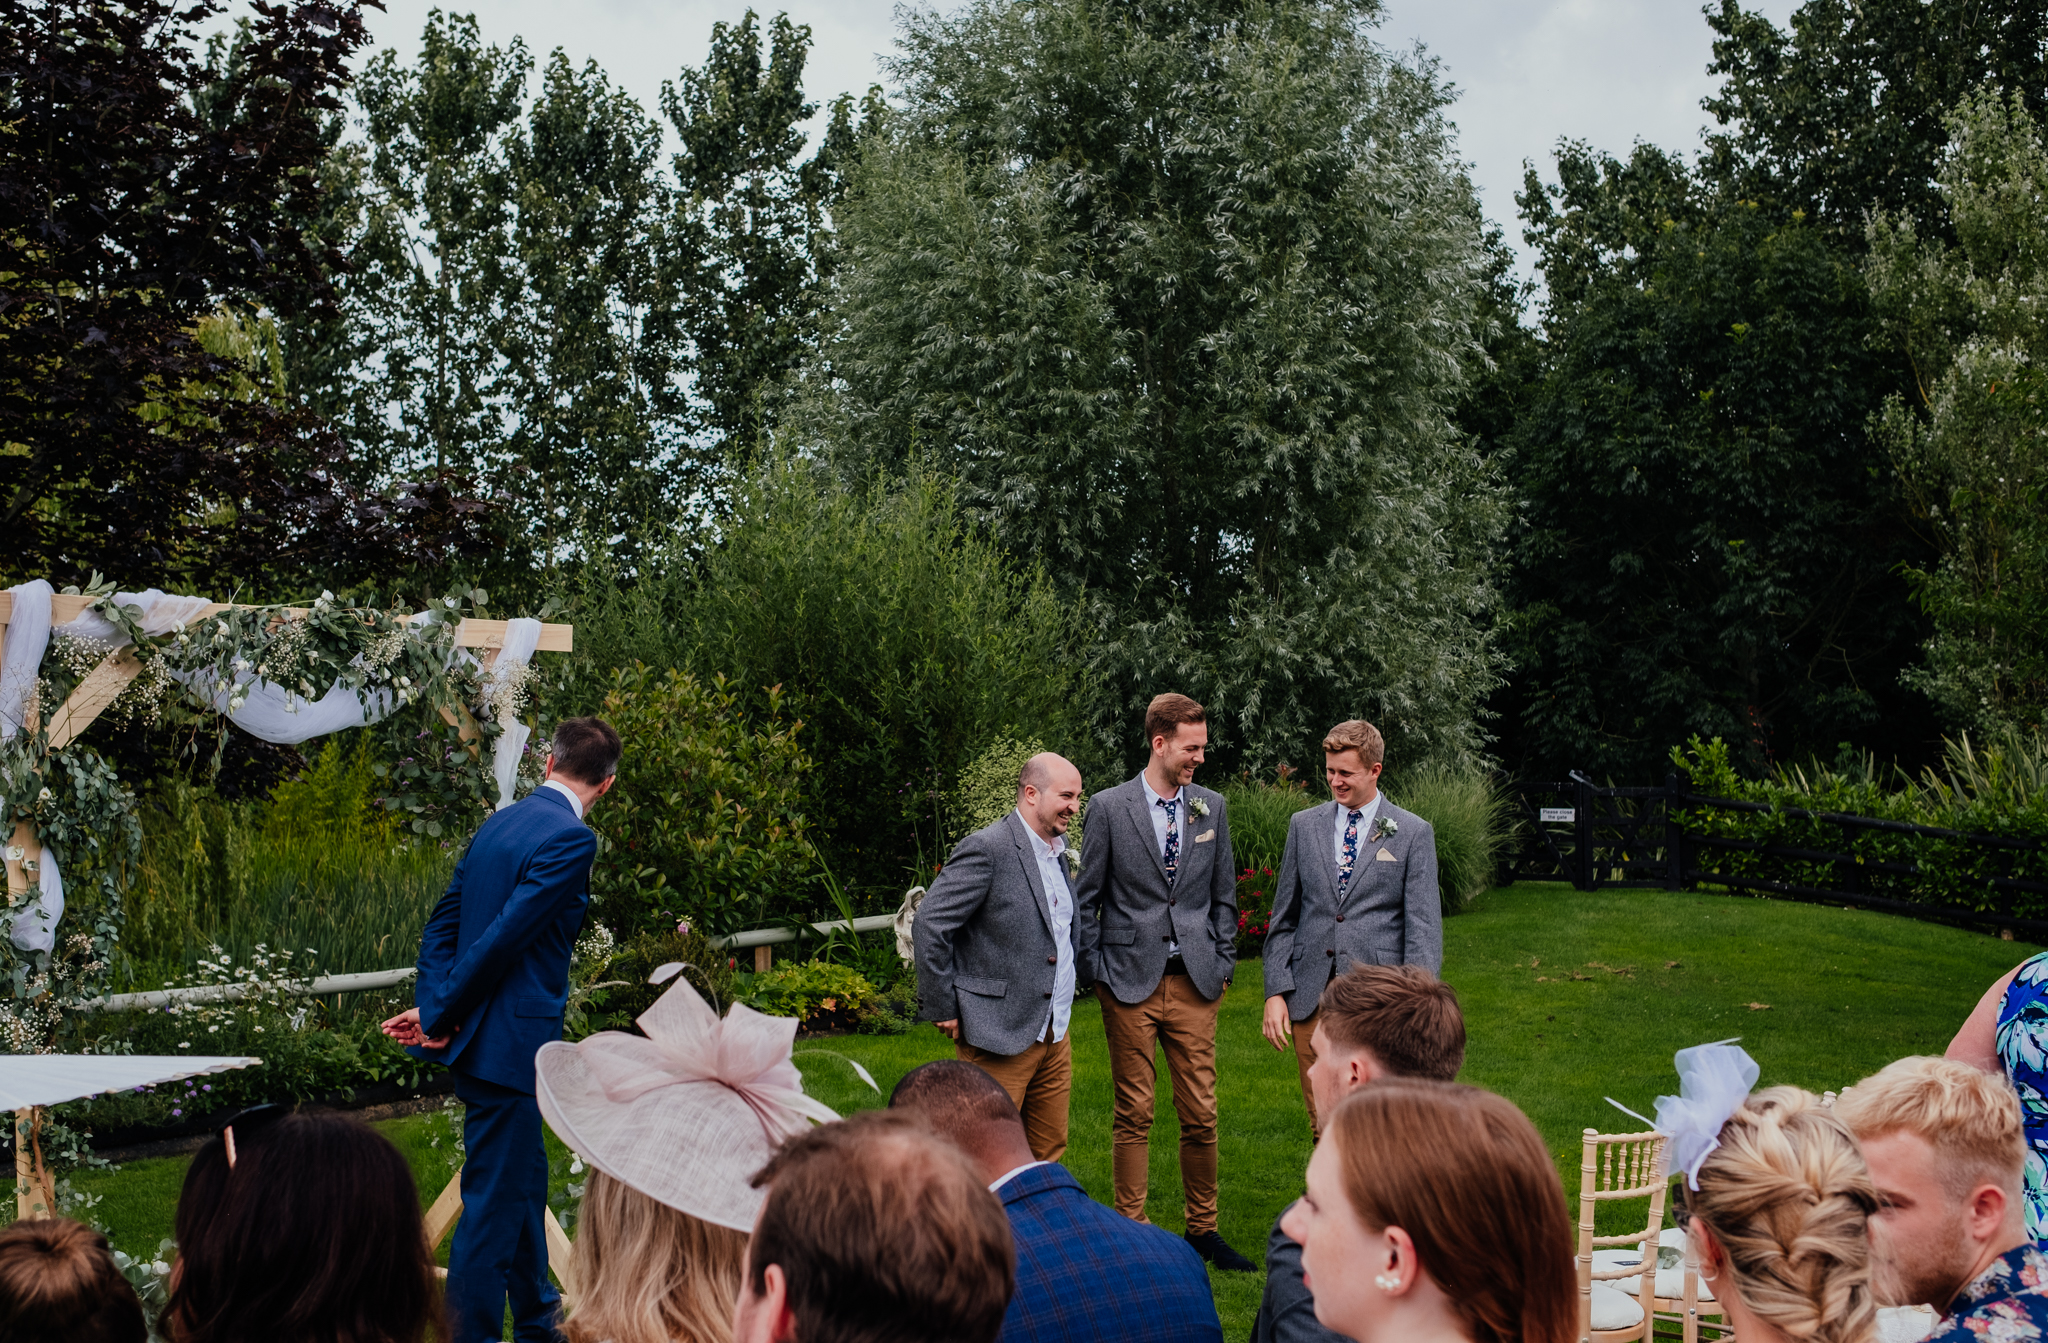 Groom and groomsmen wait for bride at outdoor wedding at Rumbolds Farm